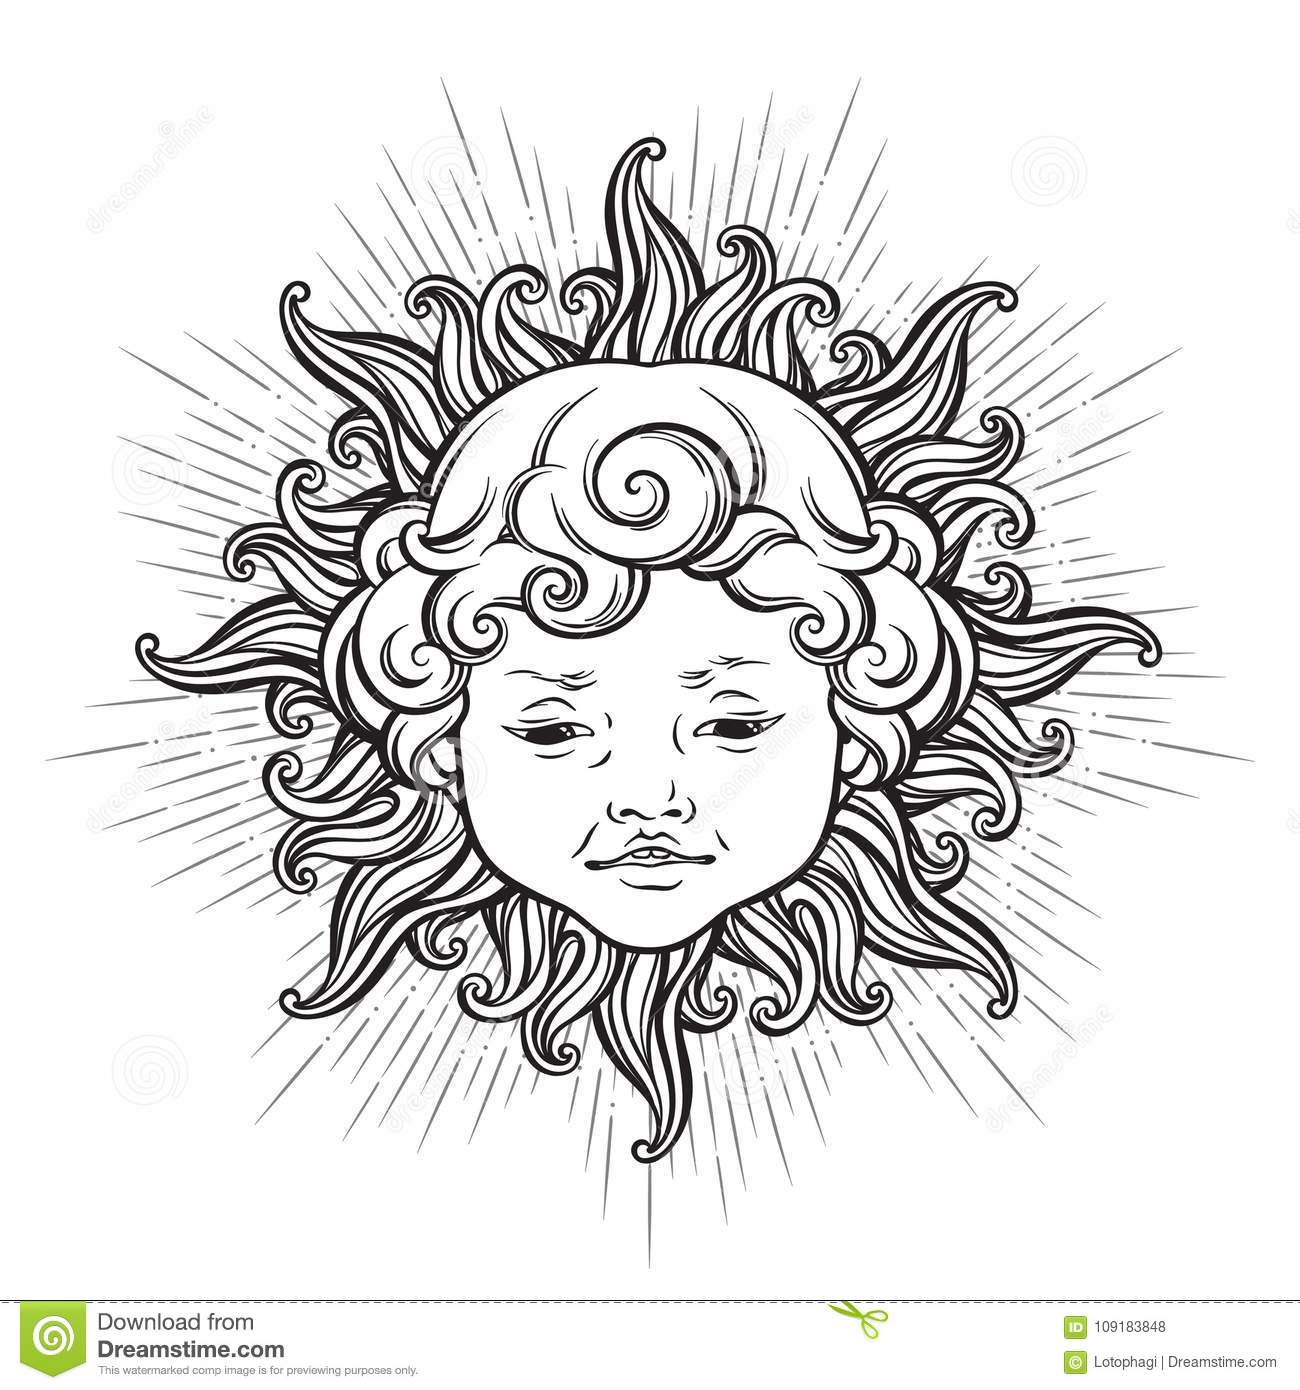 Sun With Face Of Cute Curly Smiling Baby Boy Isolated Hand Drawn Sticker Coloring Book Pages Print Or Boho Flash Tattoo Design Vector Illustration